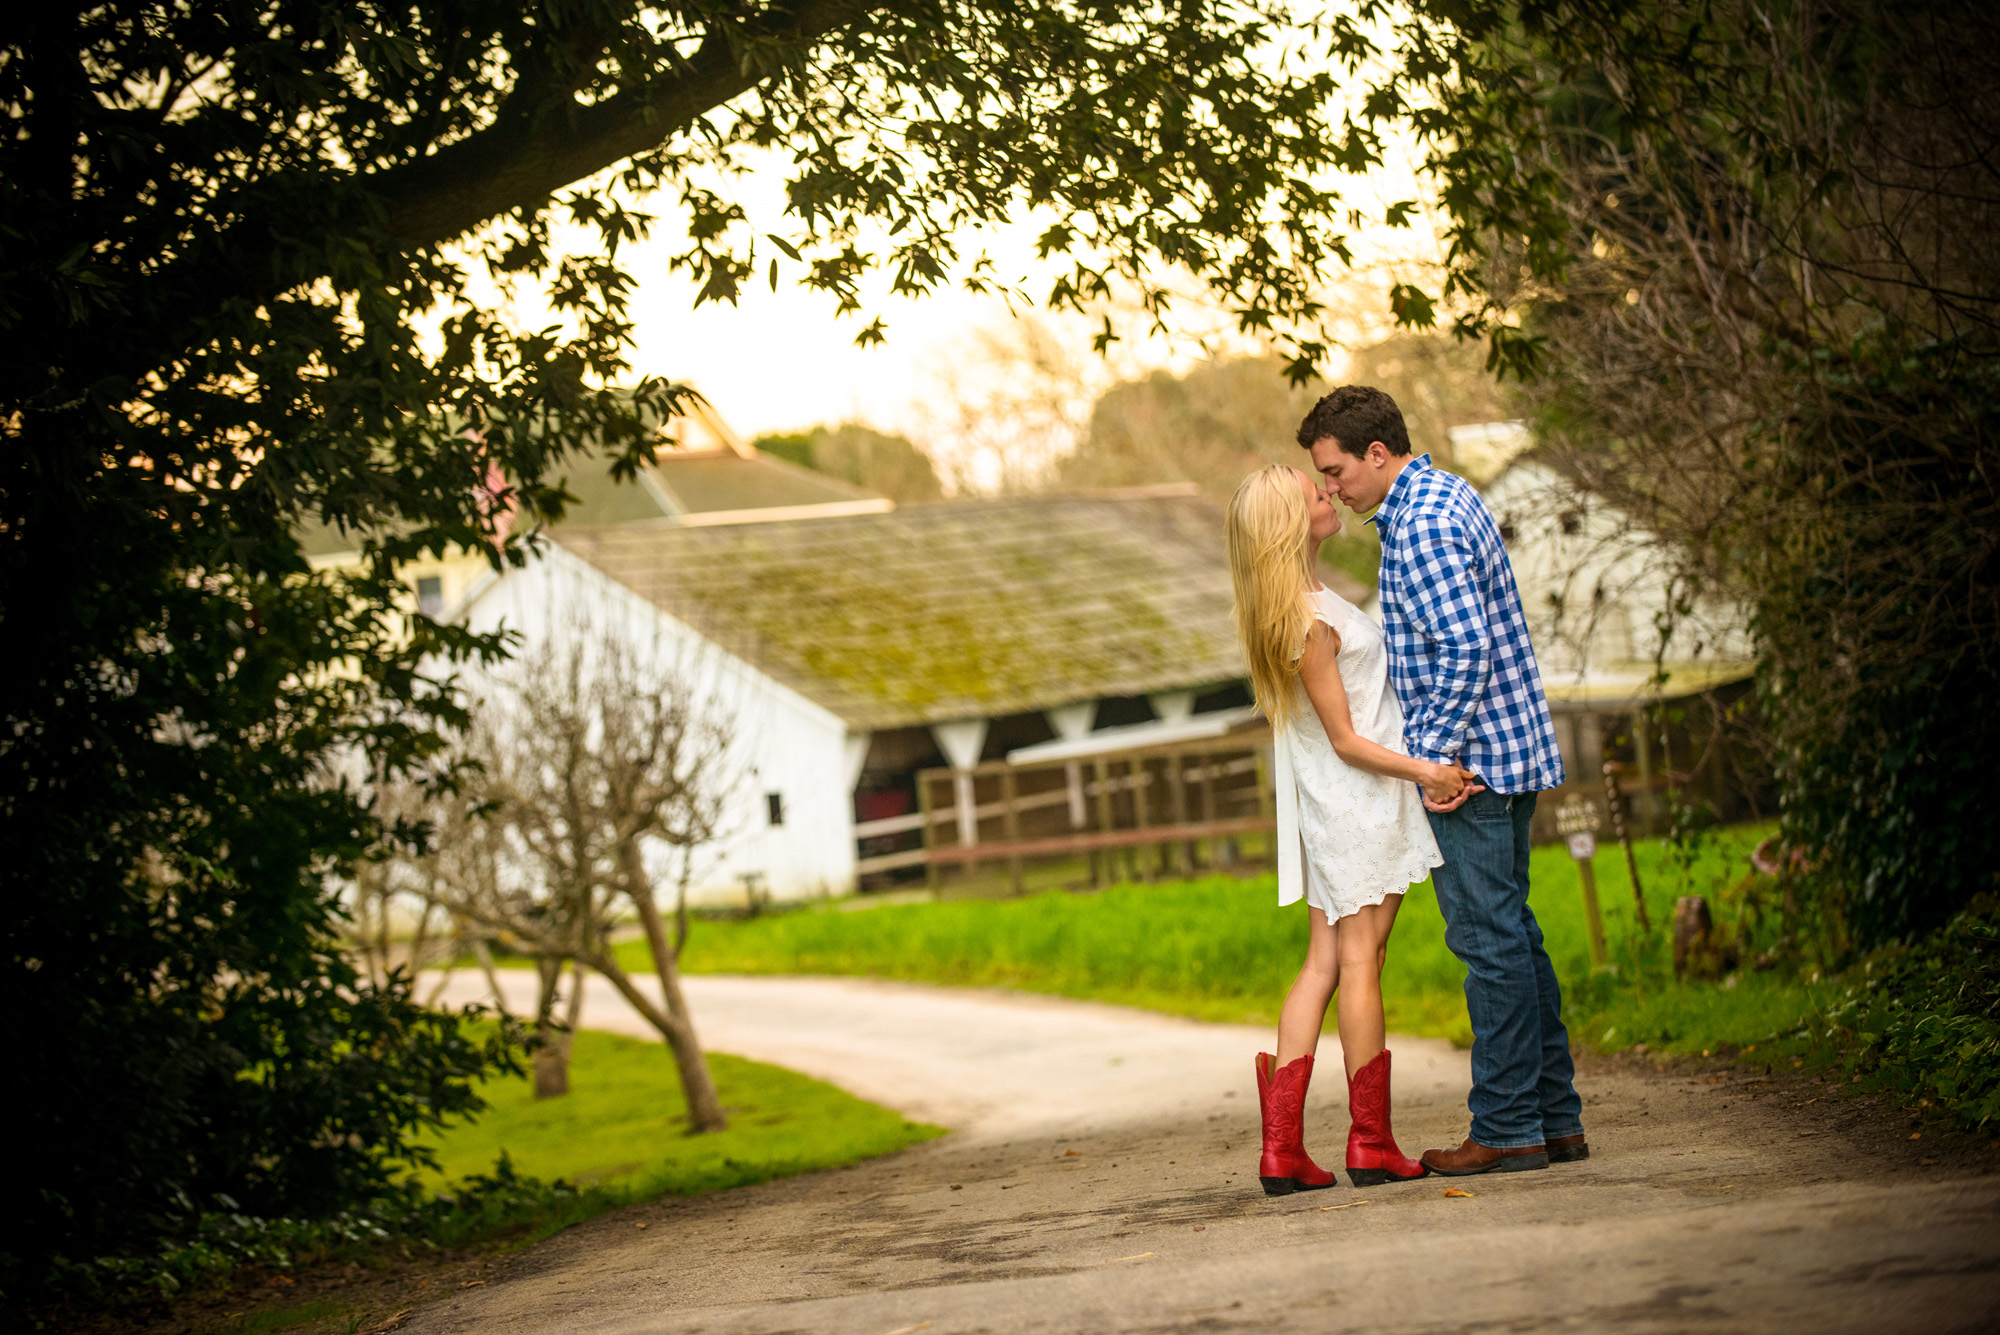 8601_d800_Meaghan_and_Brad_Wilder_Ranch_Santa_Cruz_Engagement_Photography.jpg